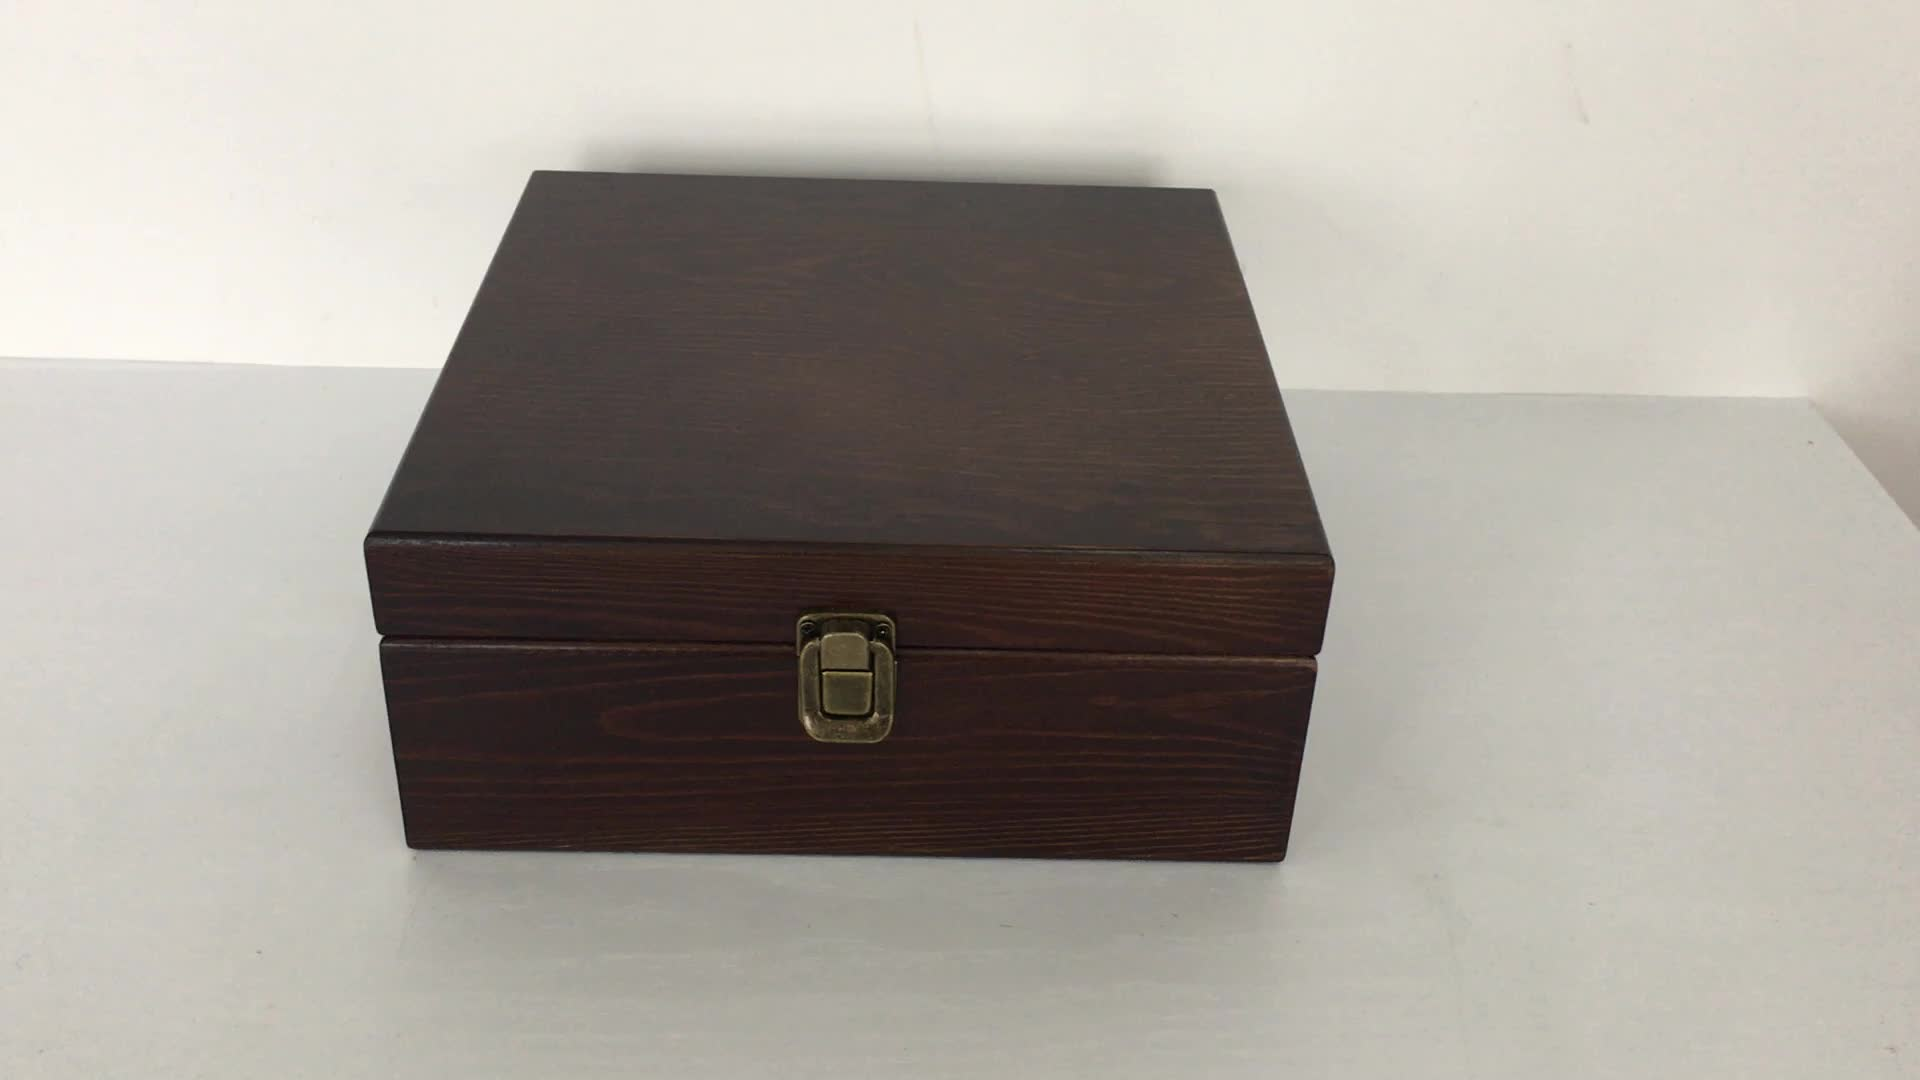 Lacquer wood box with metal initial letter Lacquer jewelry box